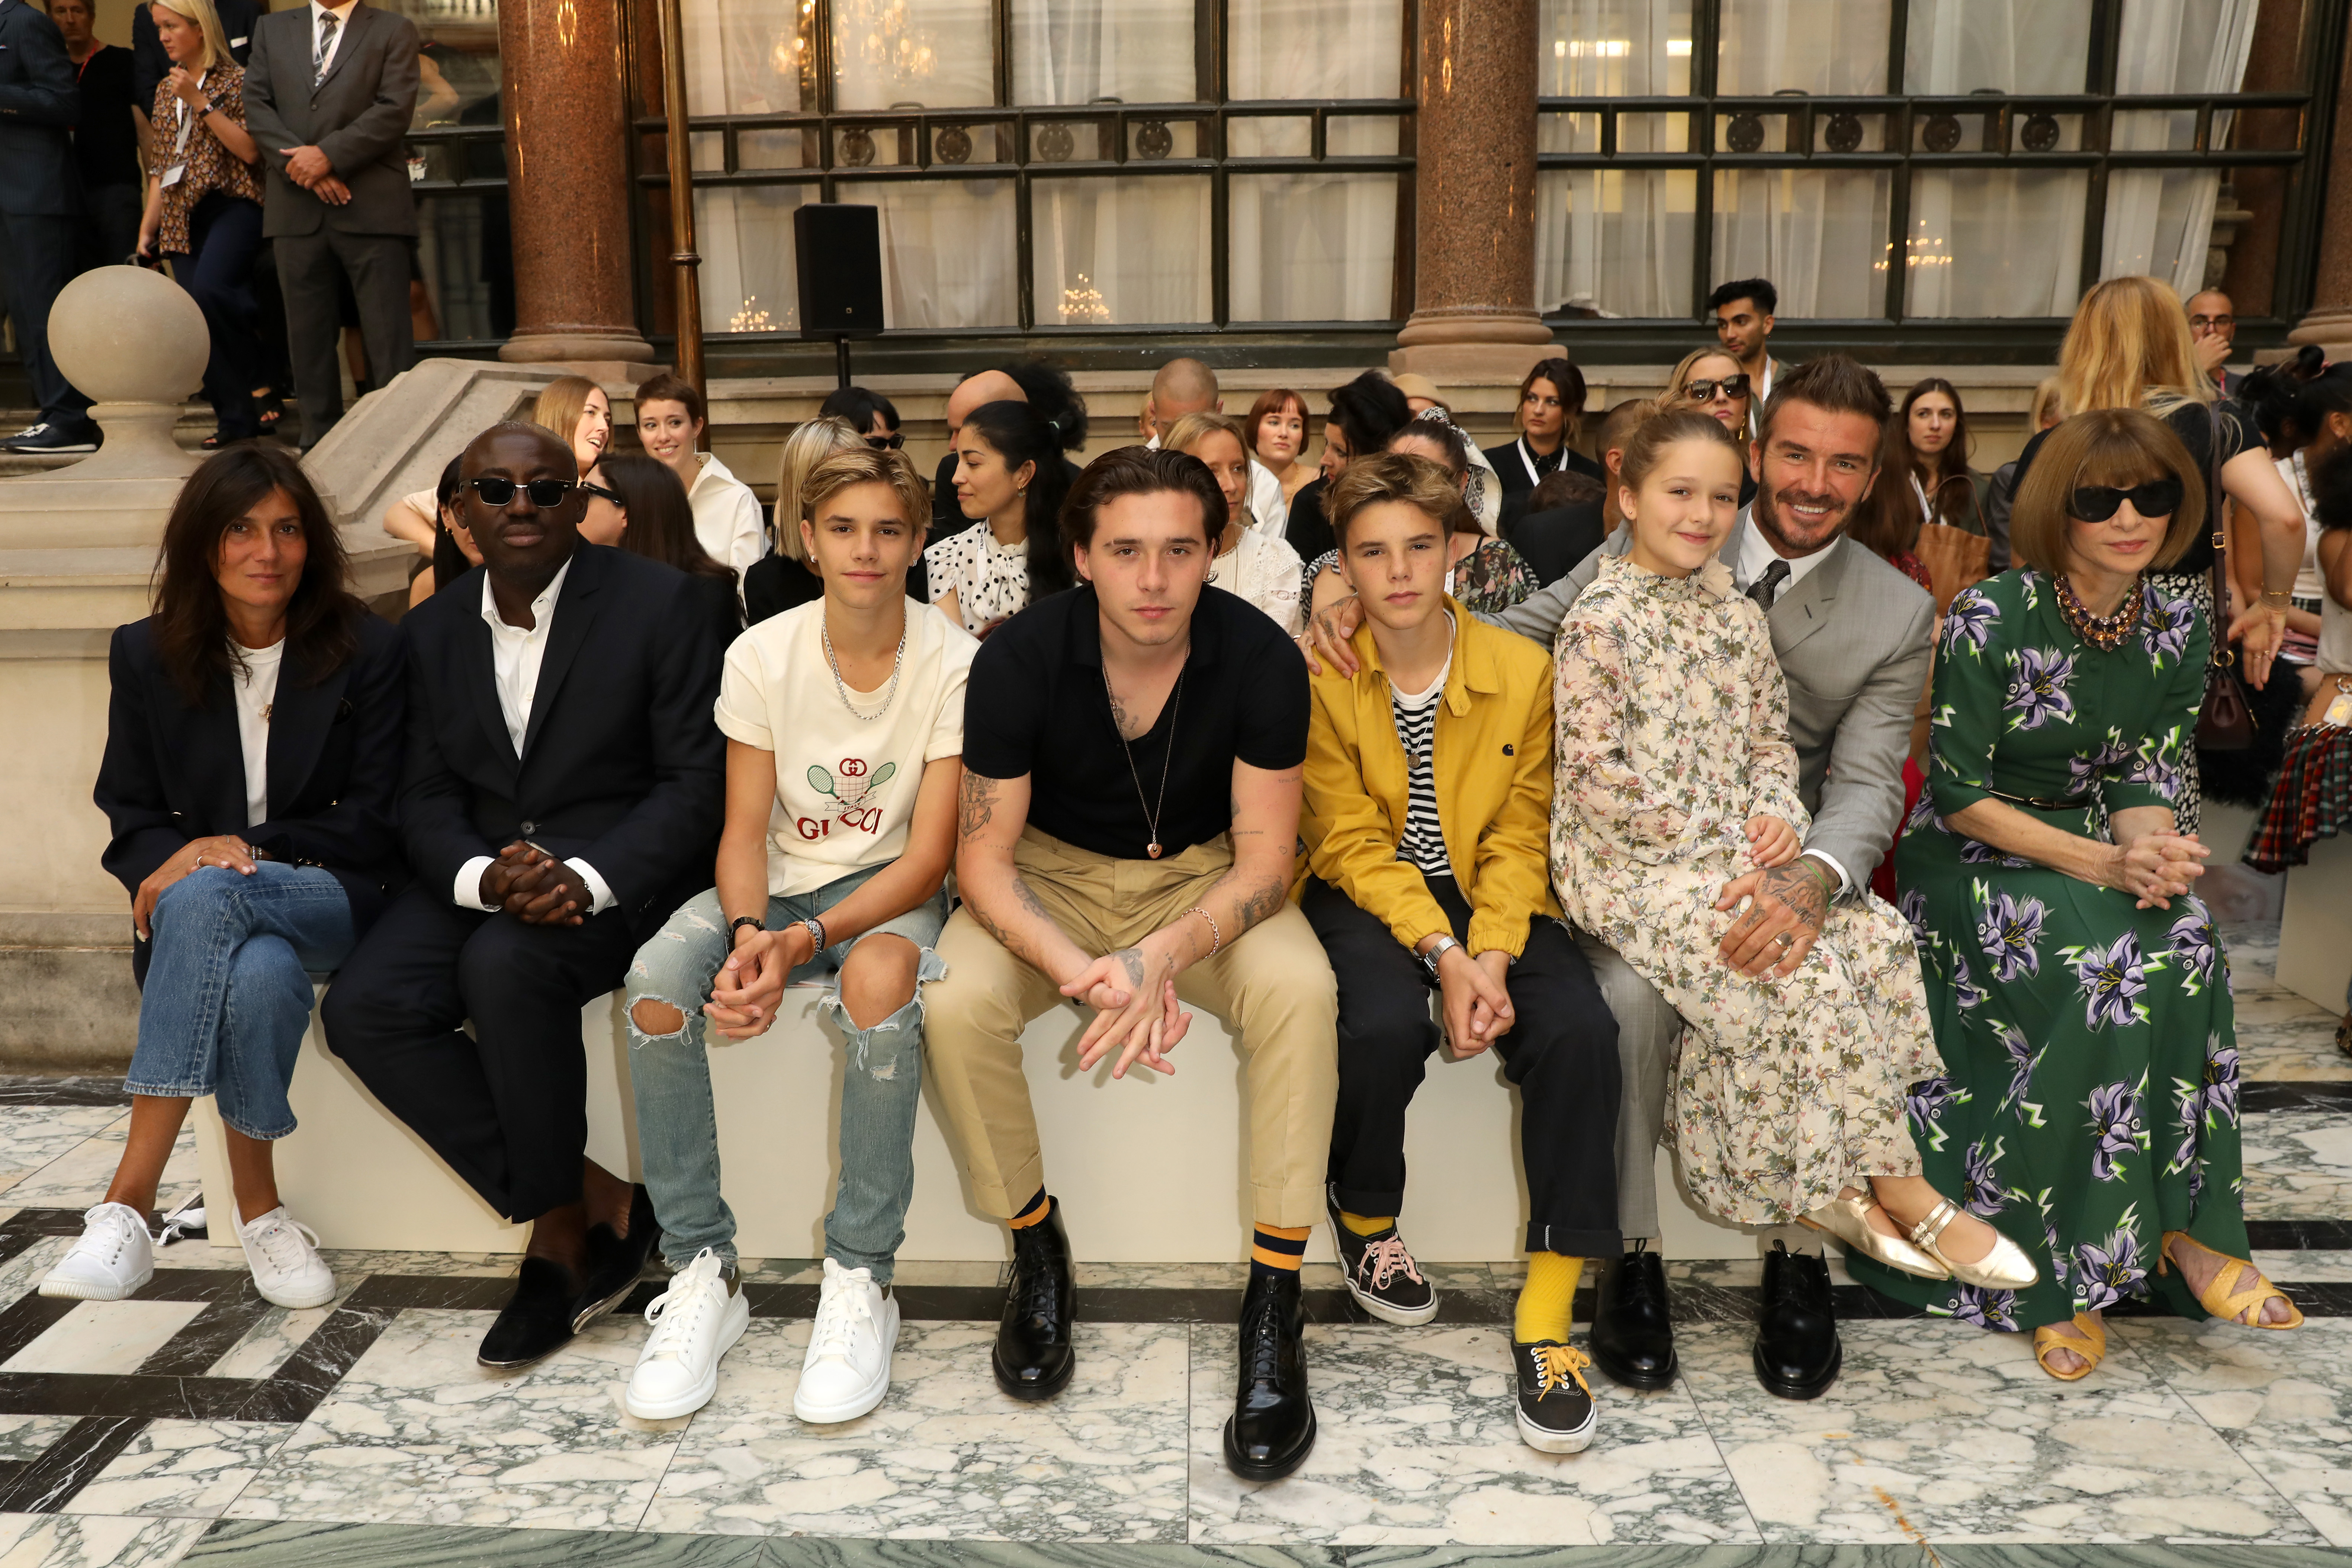 LONDON, ENGLAND - SEPTEMBER 15: (L-R) Emmanuelle Alt, Edward Enninful, Romeo Beckham, Brooklyn Beckham, Cruz Beckham, Harper Beckham, David Beckham and Anna Wintour attend the Victoria Beckham show during London Fashion Week September 2019 at British Foreign and Commonwealth Office on September 15, 2019 in London, England. (Photo by Darren Gerrish/WireImage)